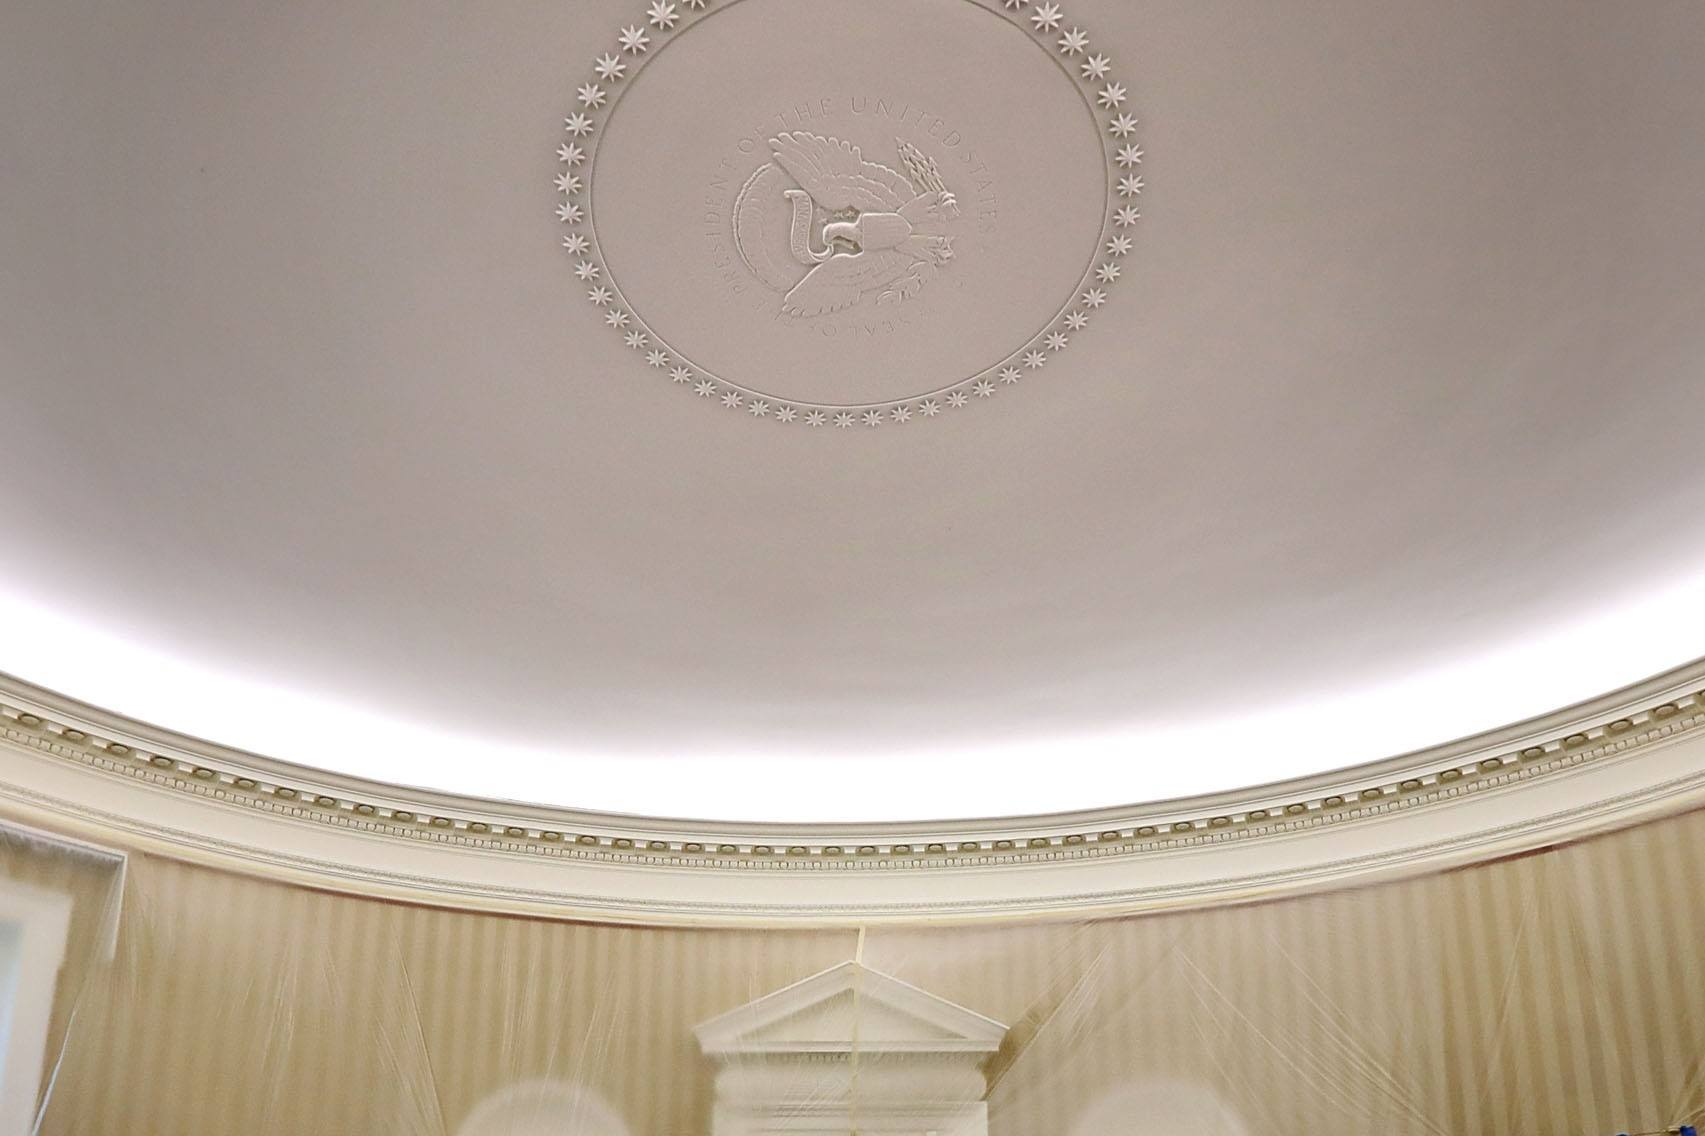 Oval Office ceiling